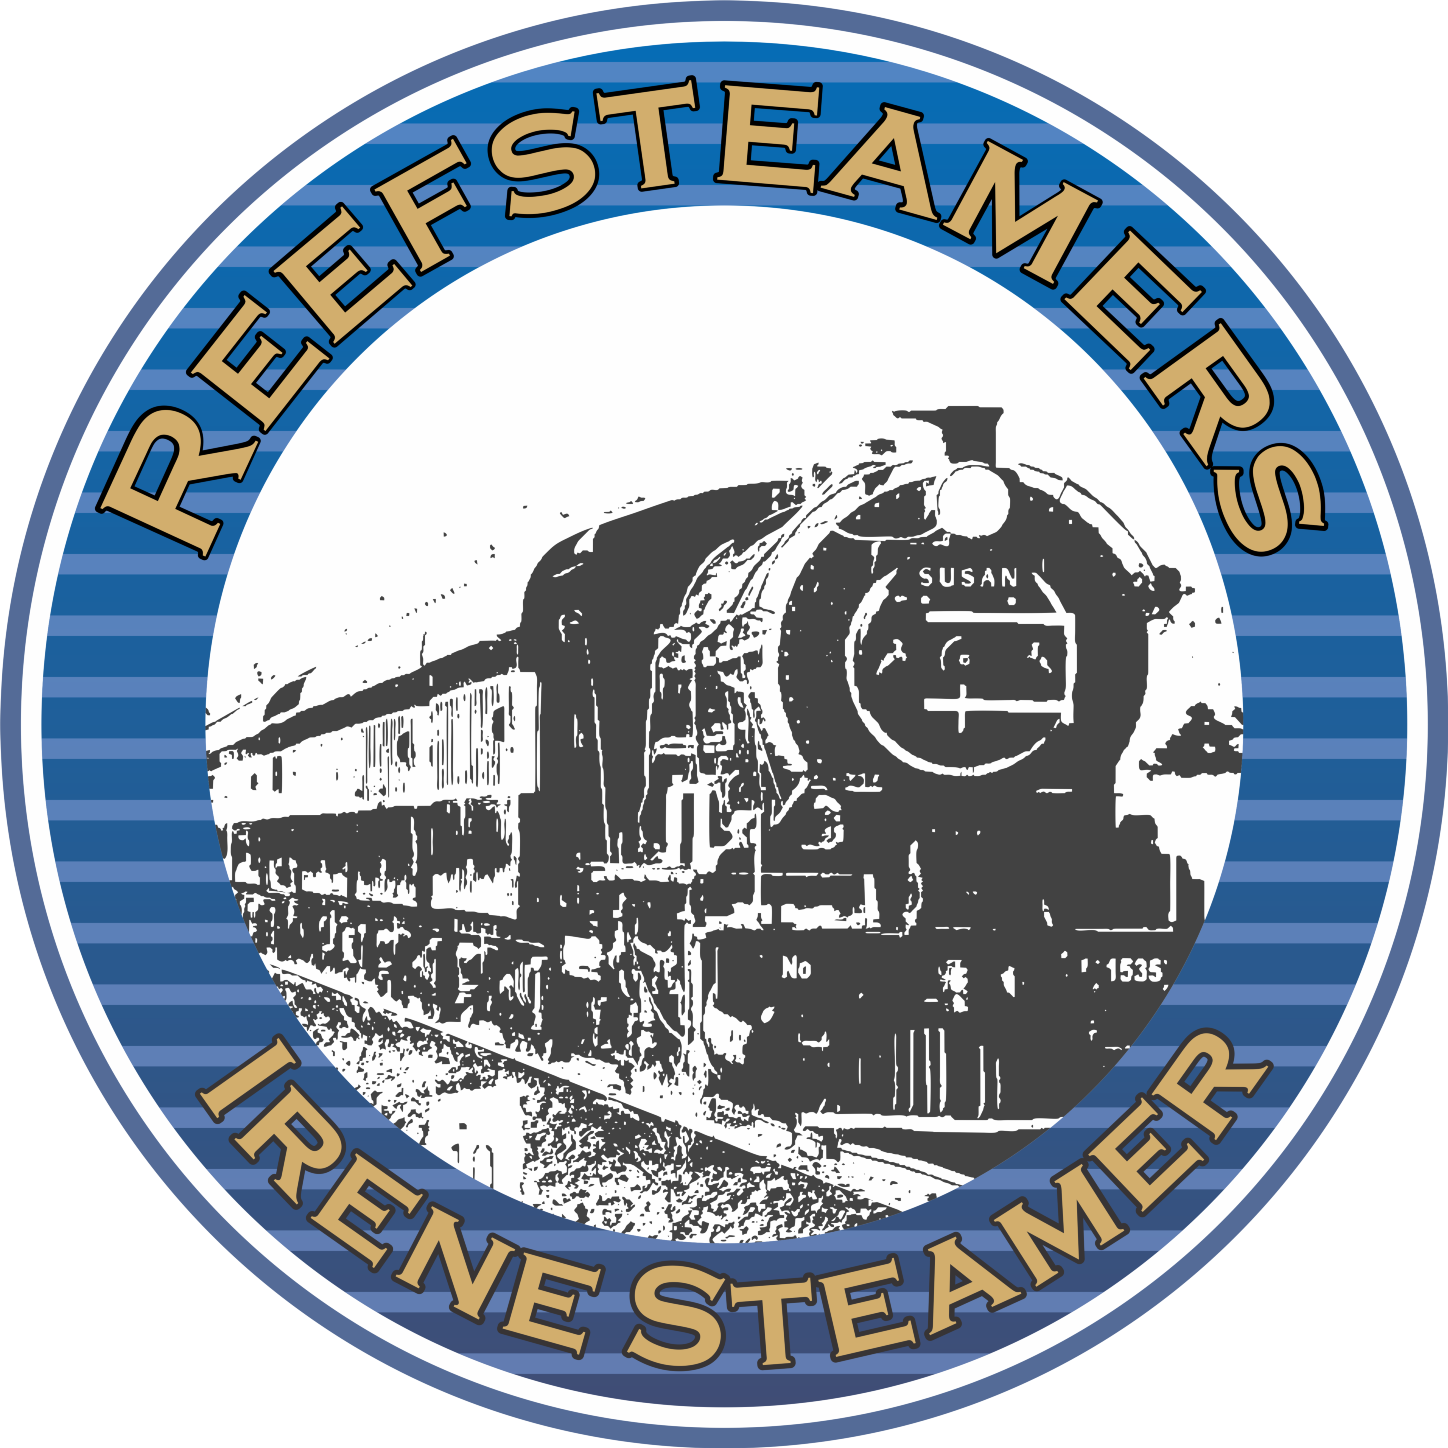 Irene Steamer Ticket Booking